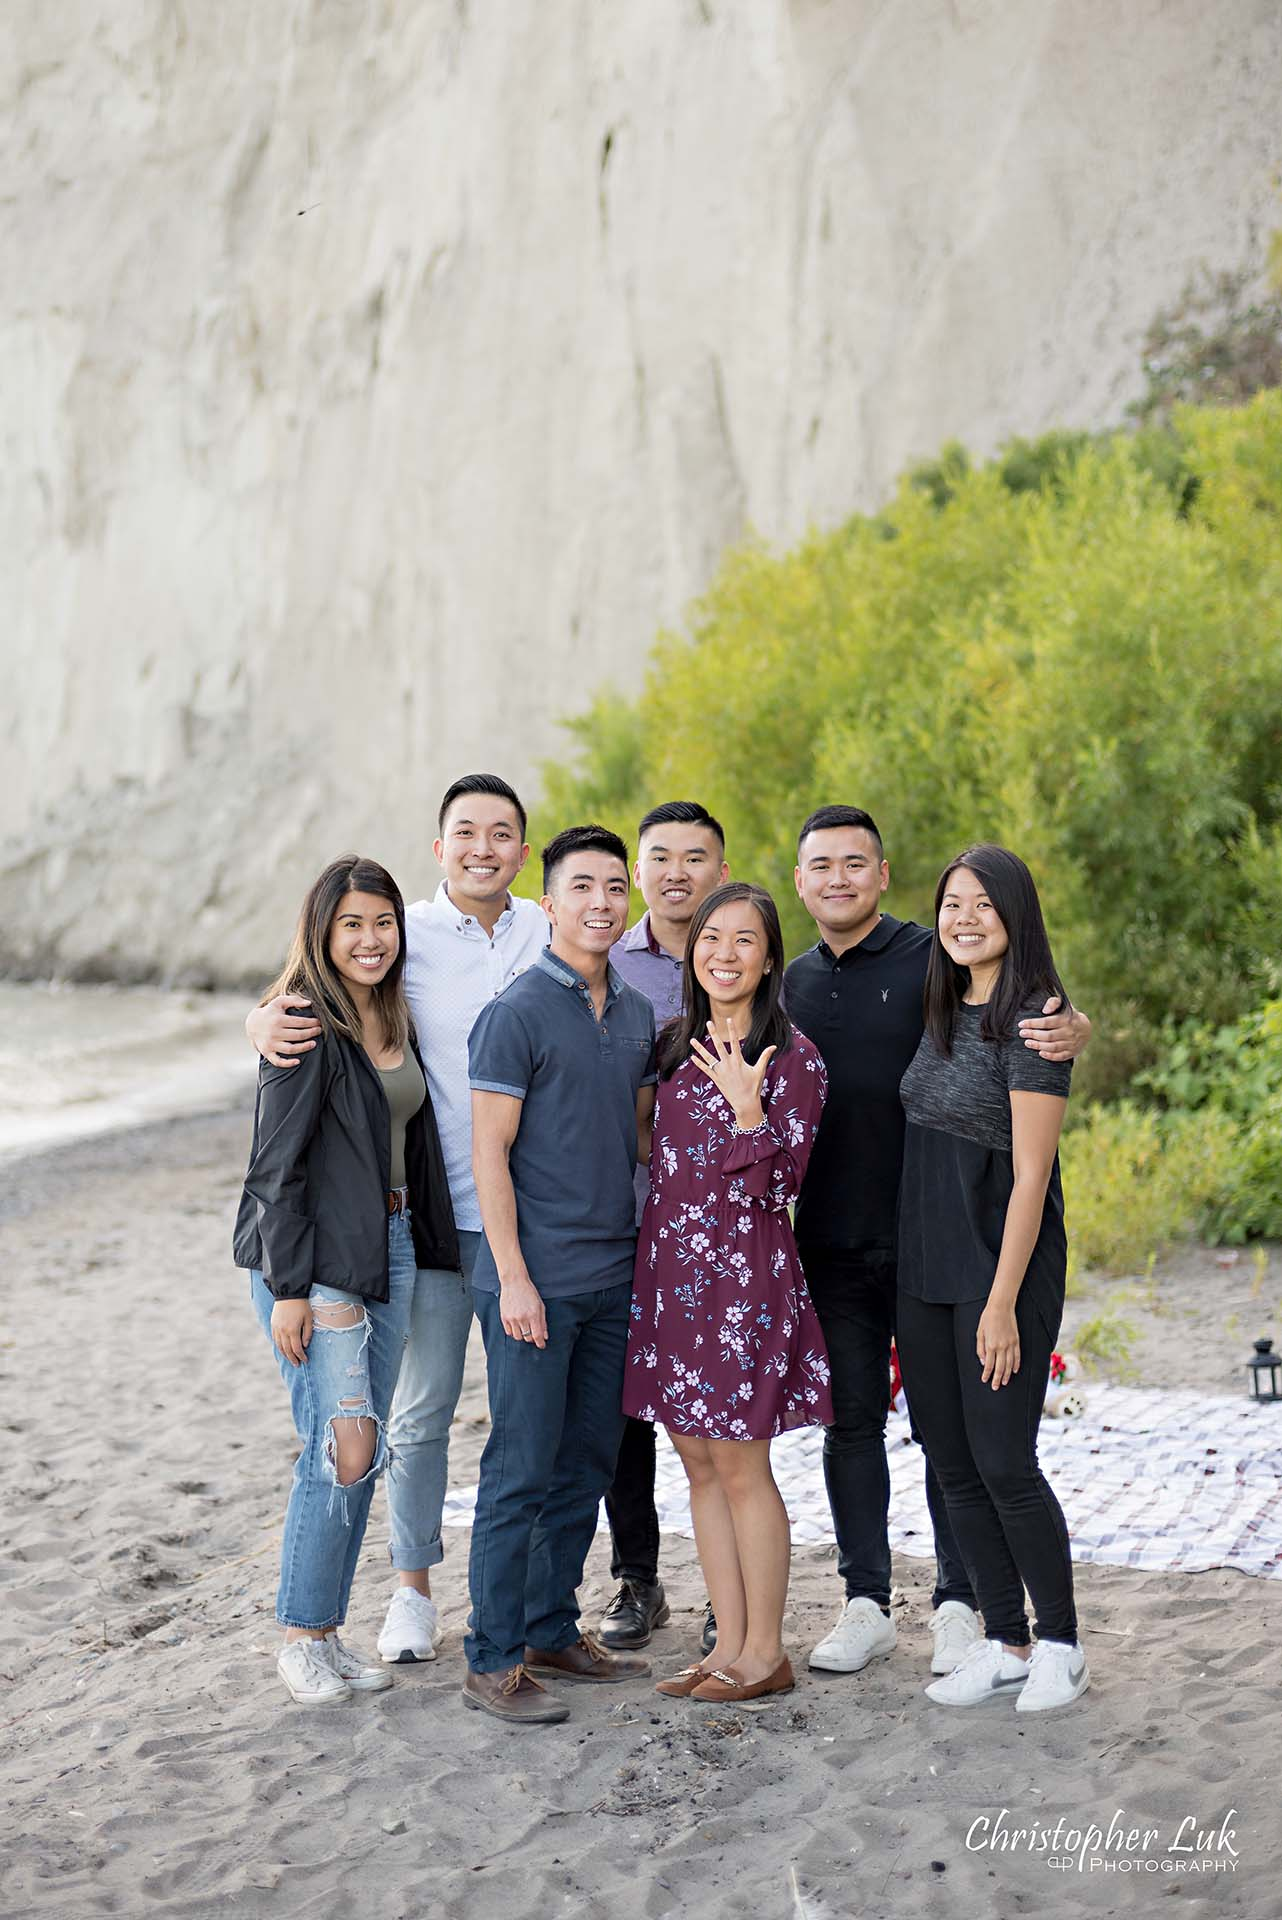 Christopher Luk Toronto Photographer Scarborough Bluffs Beach Park Sunset Surprise Wedding Marriage Engagement Proposal Candid Natural Photojournalistic Bride Groom Friends Helpers Group Photo